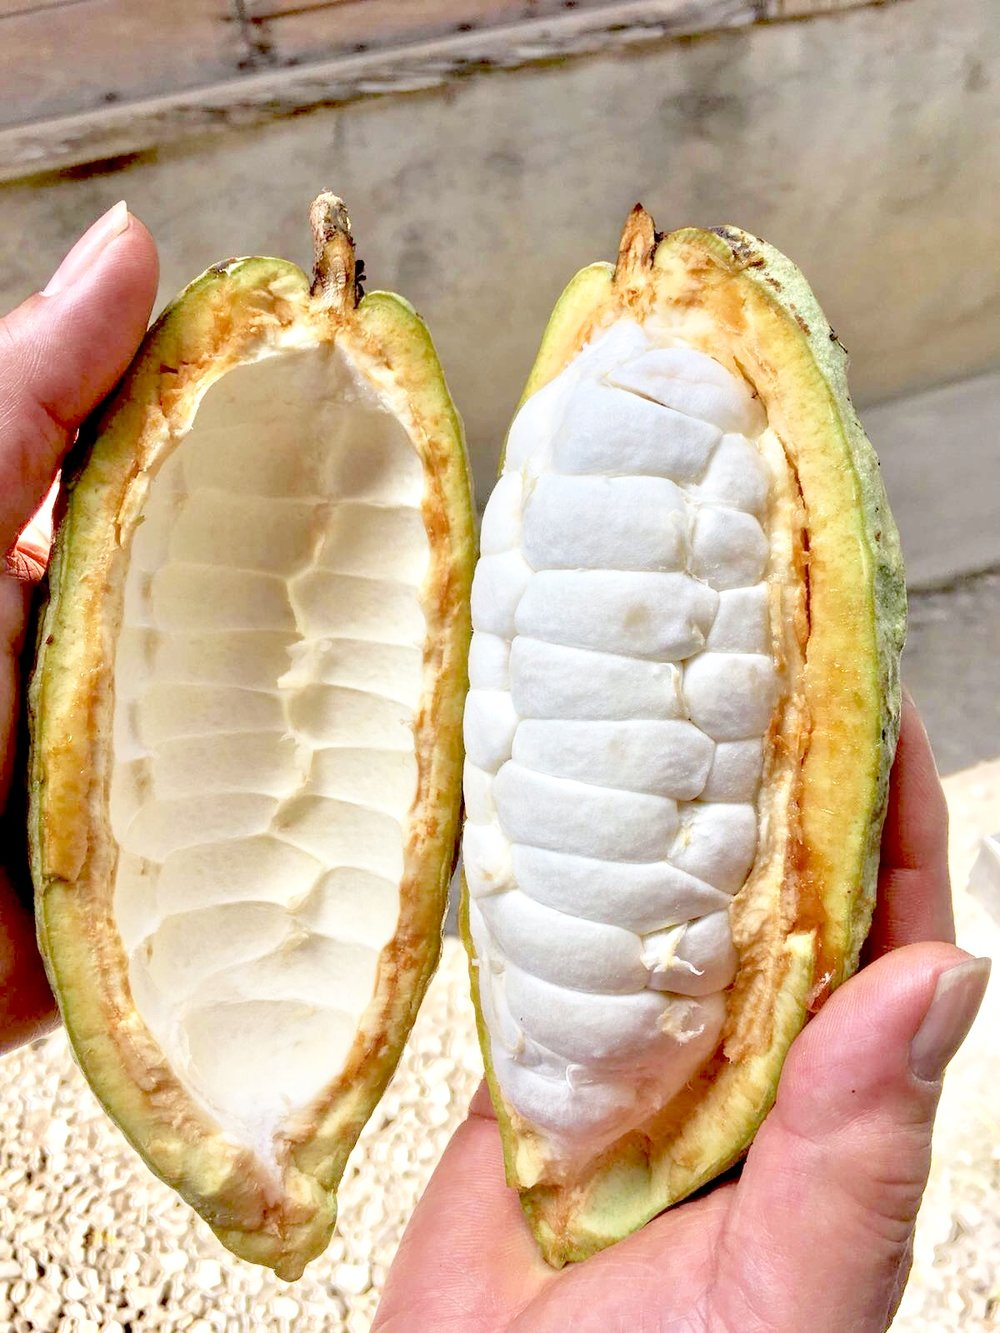 Fresh cacao pod, with segments of fruit (also known as pulp), each containing a cacao seed. (Image property of Geoseph Domenichiello)